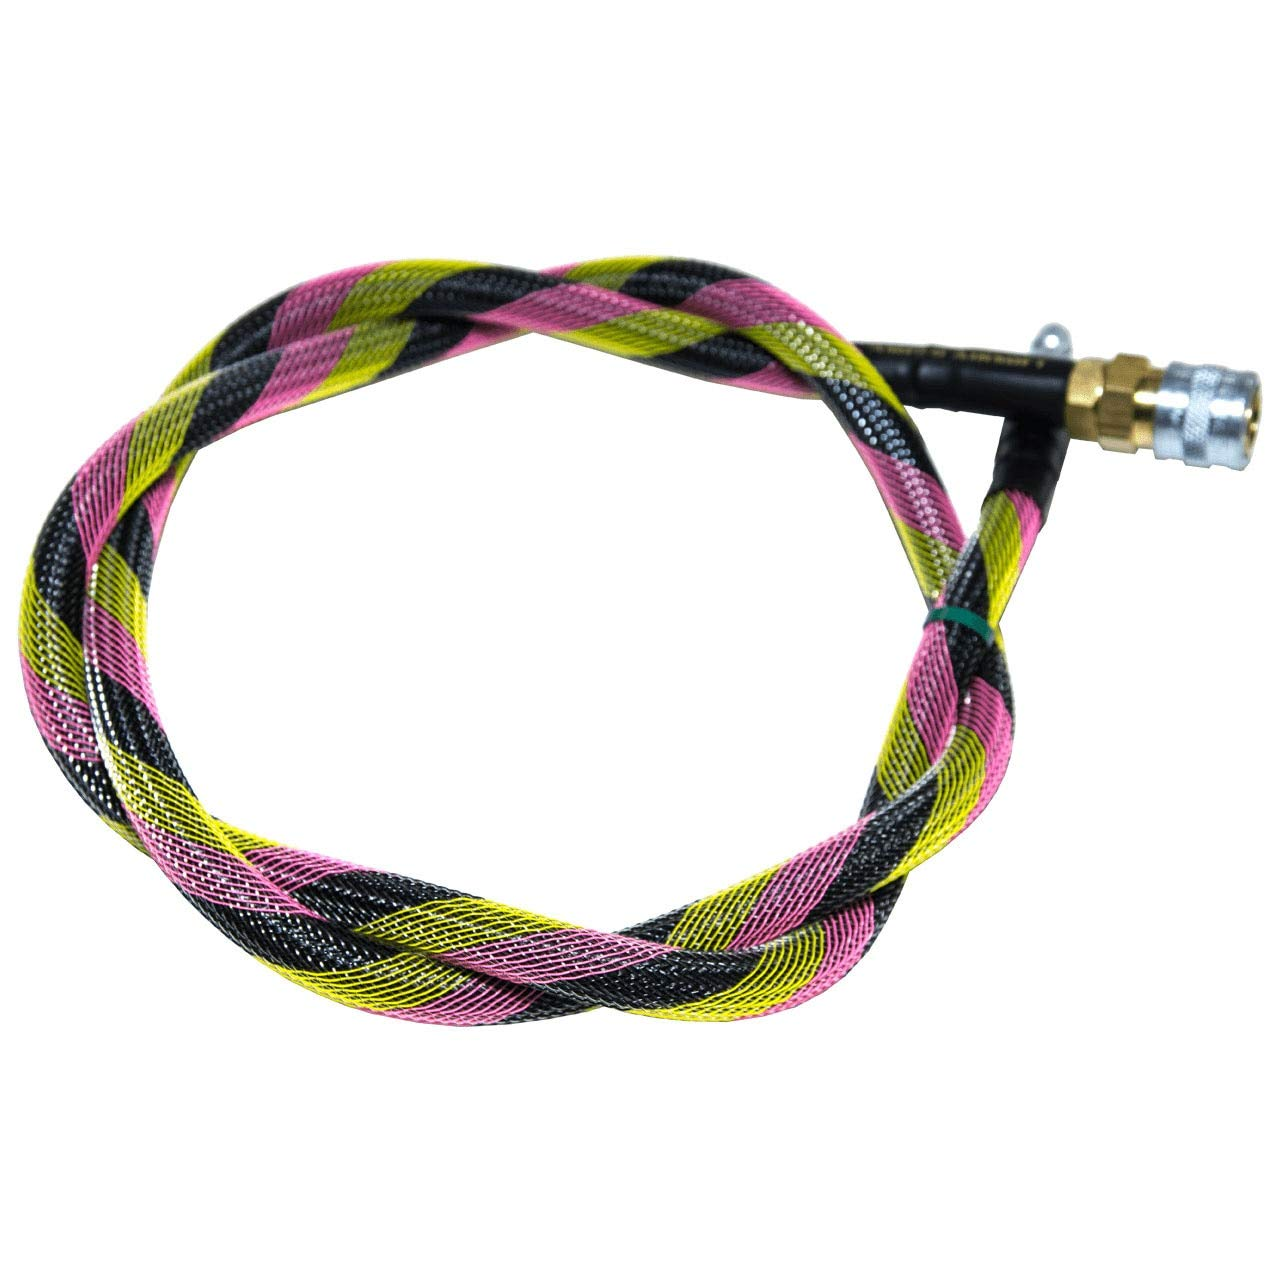 AMPED Airsoft Amped Line | Standard Weave for PolarStar, Wolverine, and Redline HPA Units 42 Inch Fresh Prince by AMPED Airsoft